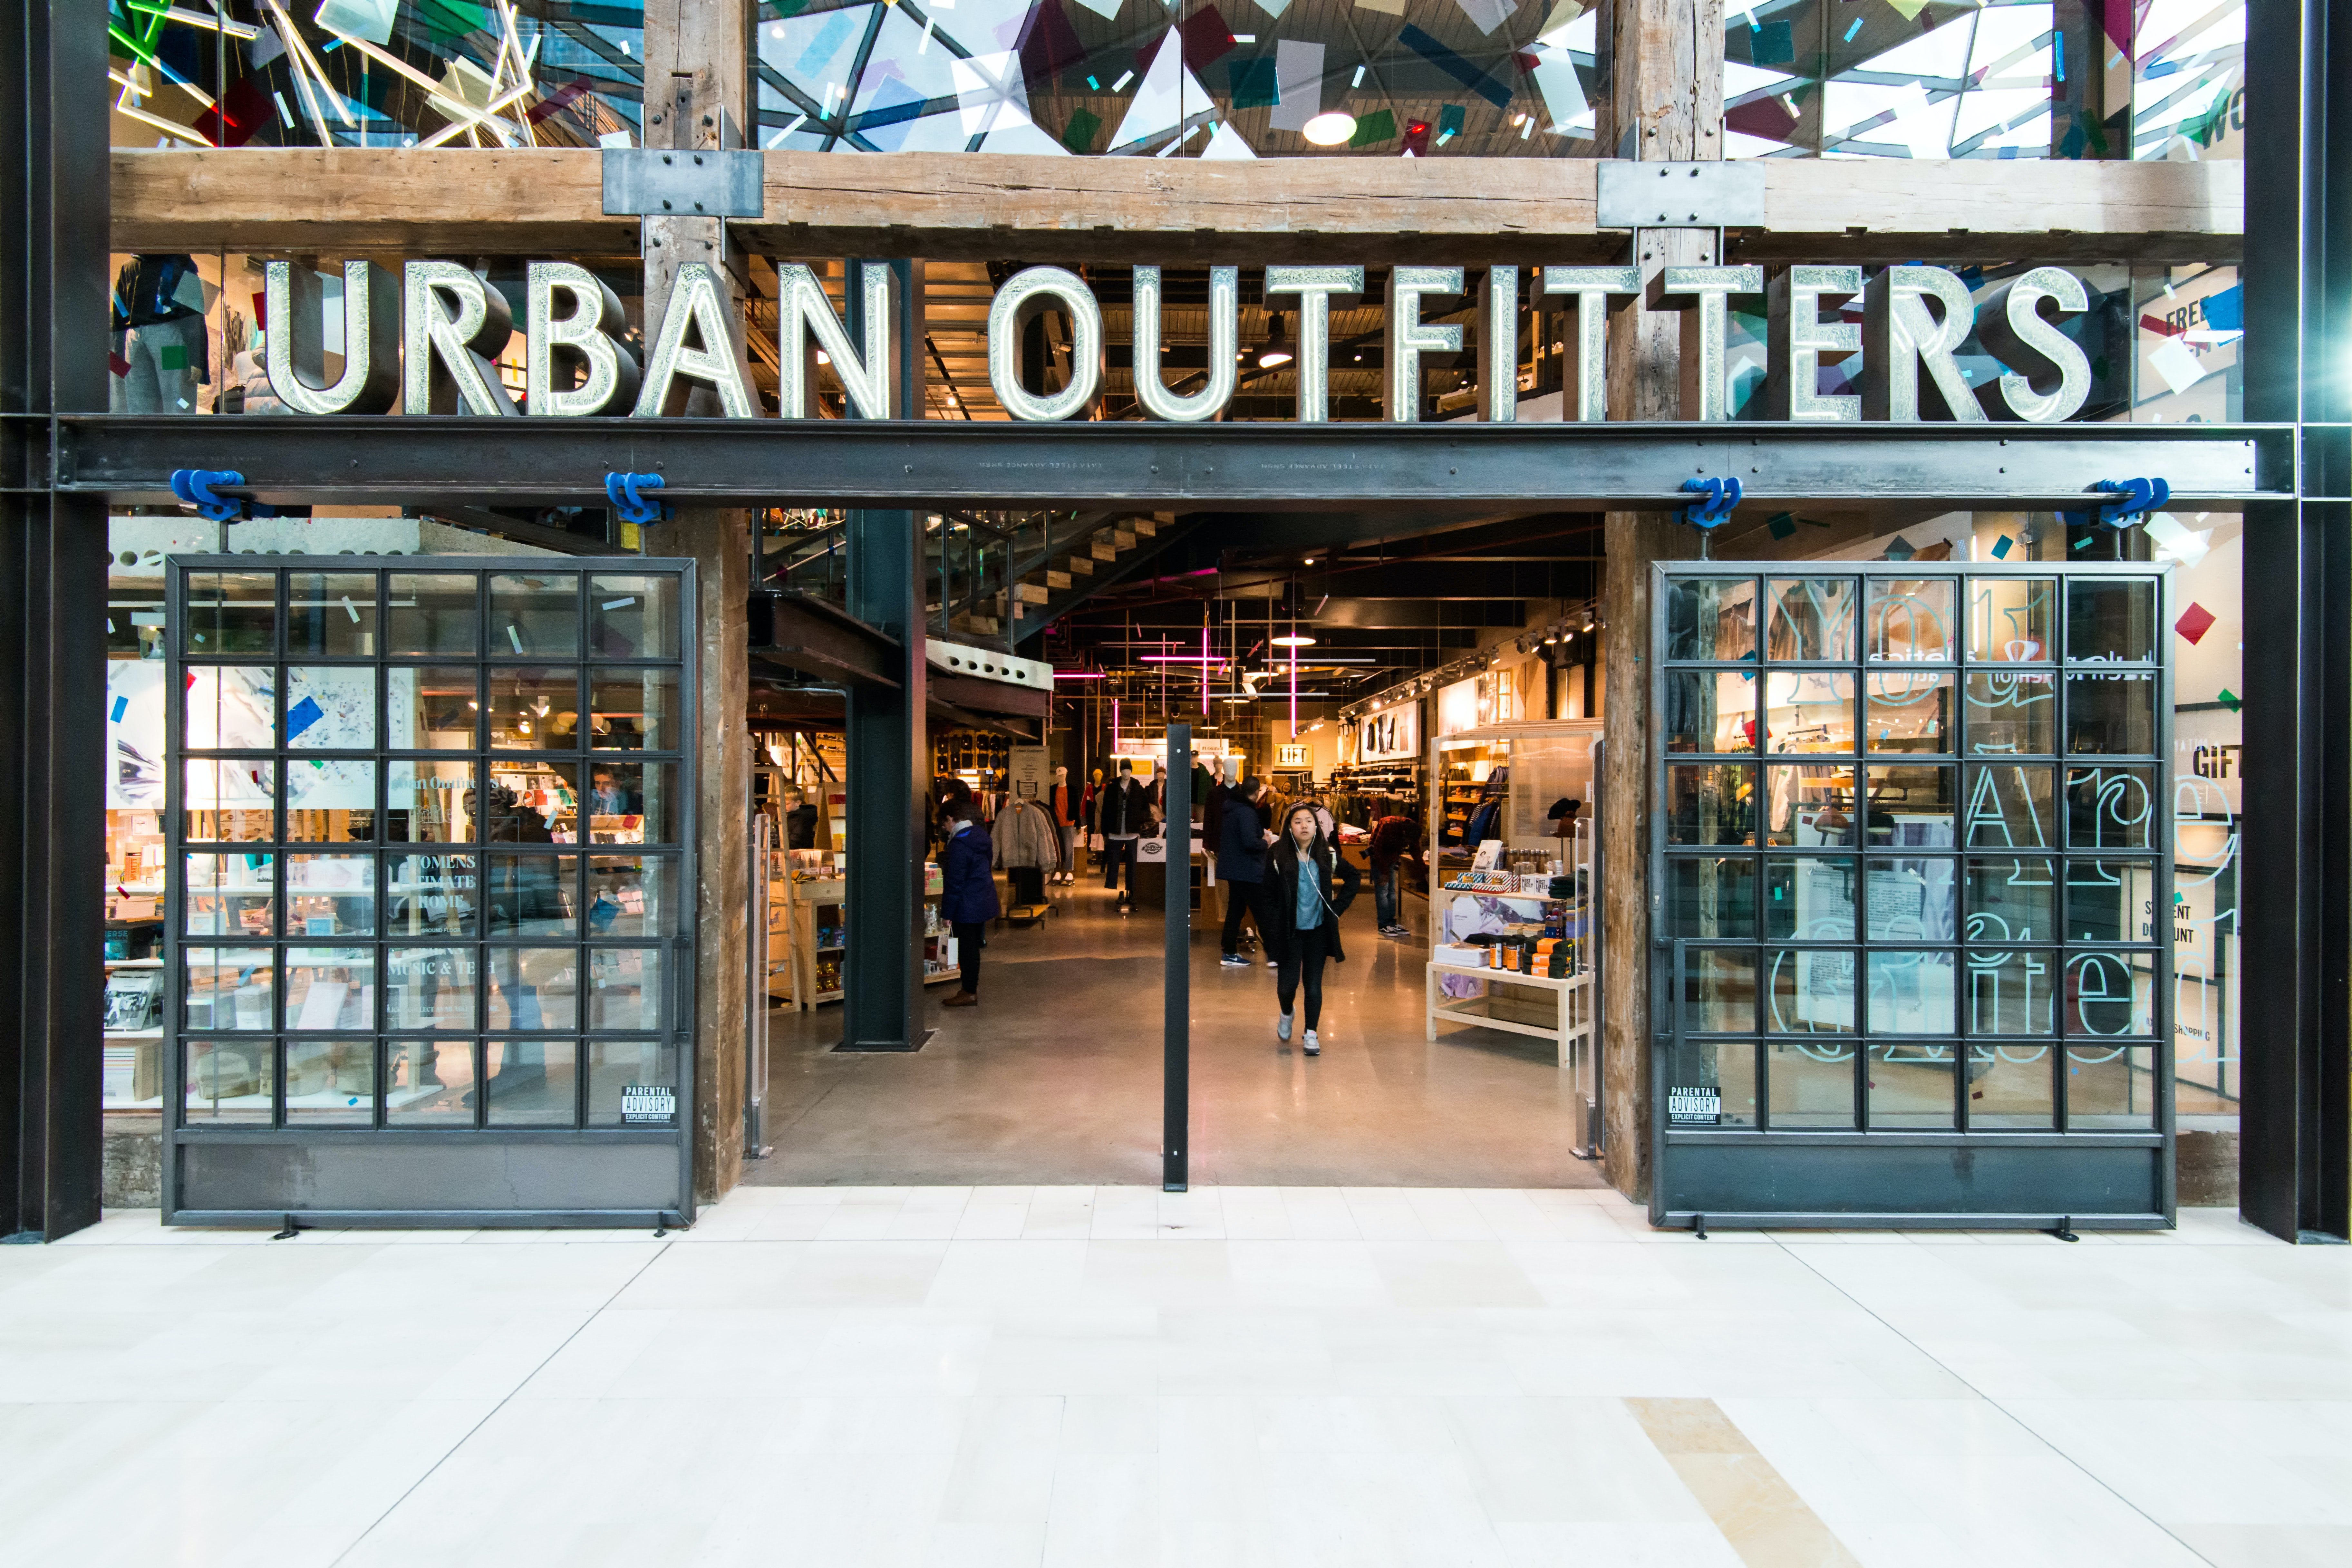 An Urban Outfitters store | Source: Shutterstock